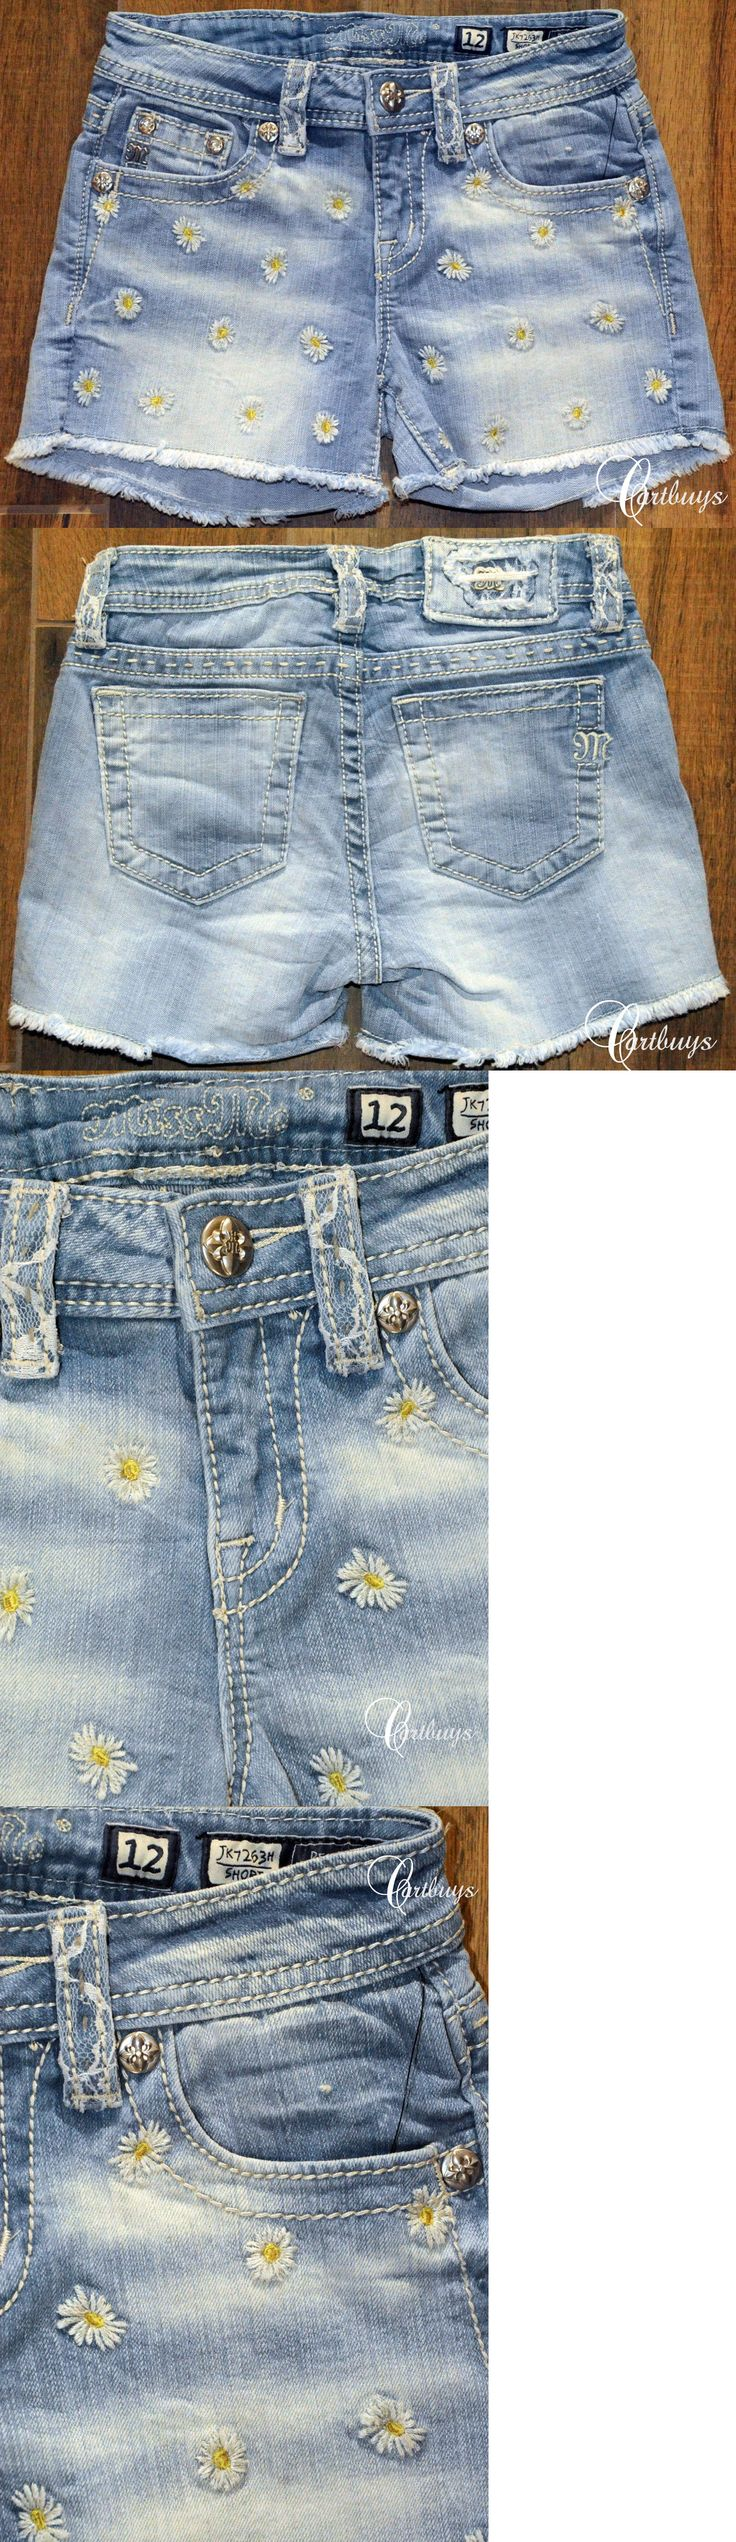 Shorts 15648: New Girls Miss Me Jeans Daisy And Lace Short Jk7263h Size 7, 12 Msrp $74 -> BUY IT NOW ONLY: $44.99 on eBay!